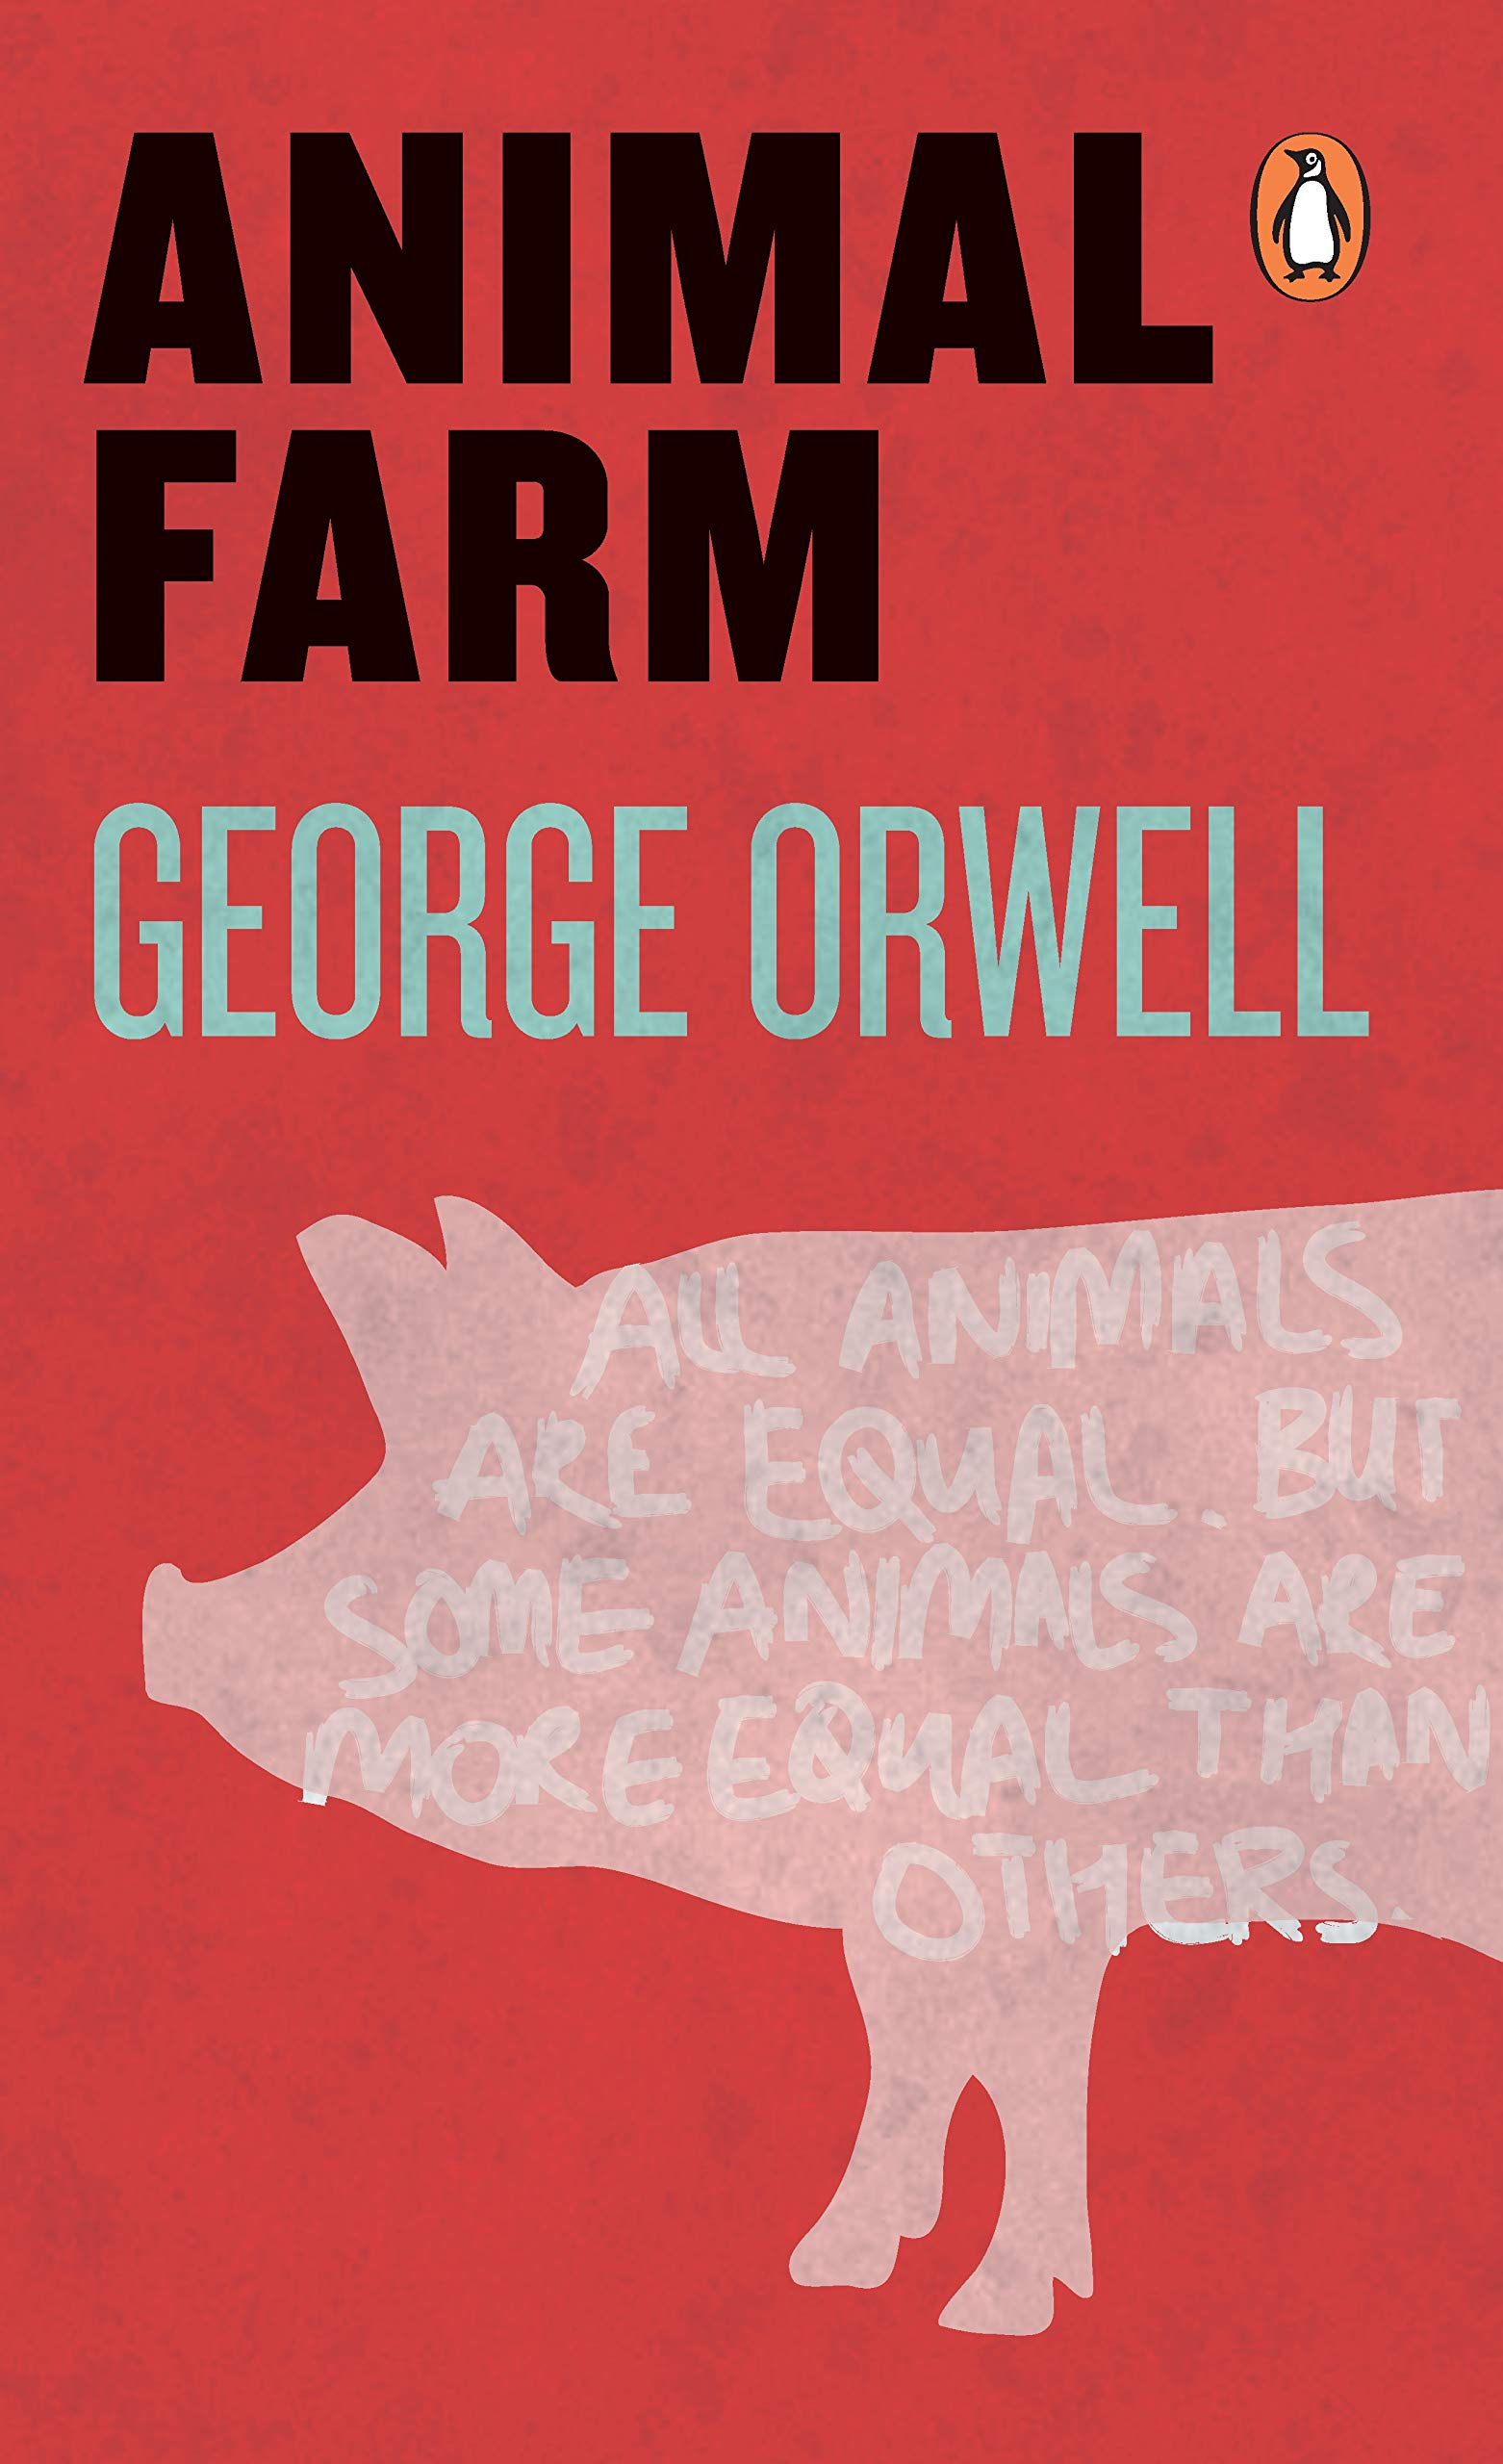 Buy Animal Farm Book Online at Low Prices in India | Animal Farm Reviews &  Ratings - Amazon.in